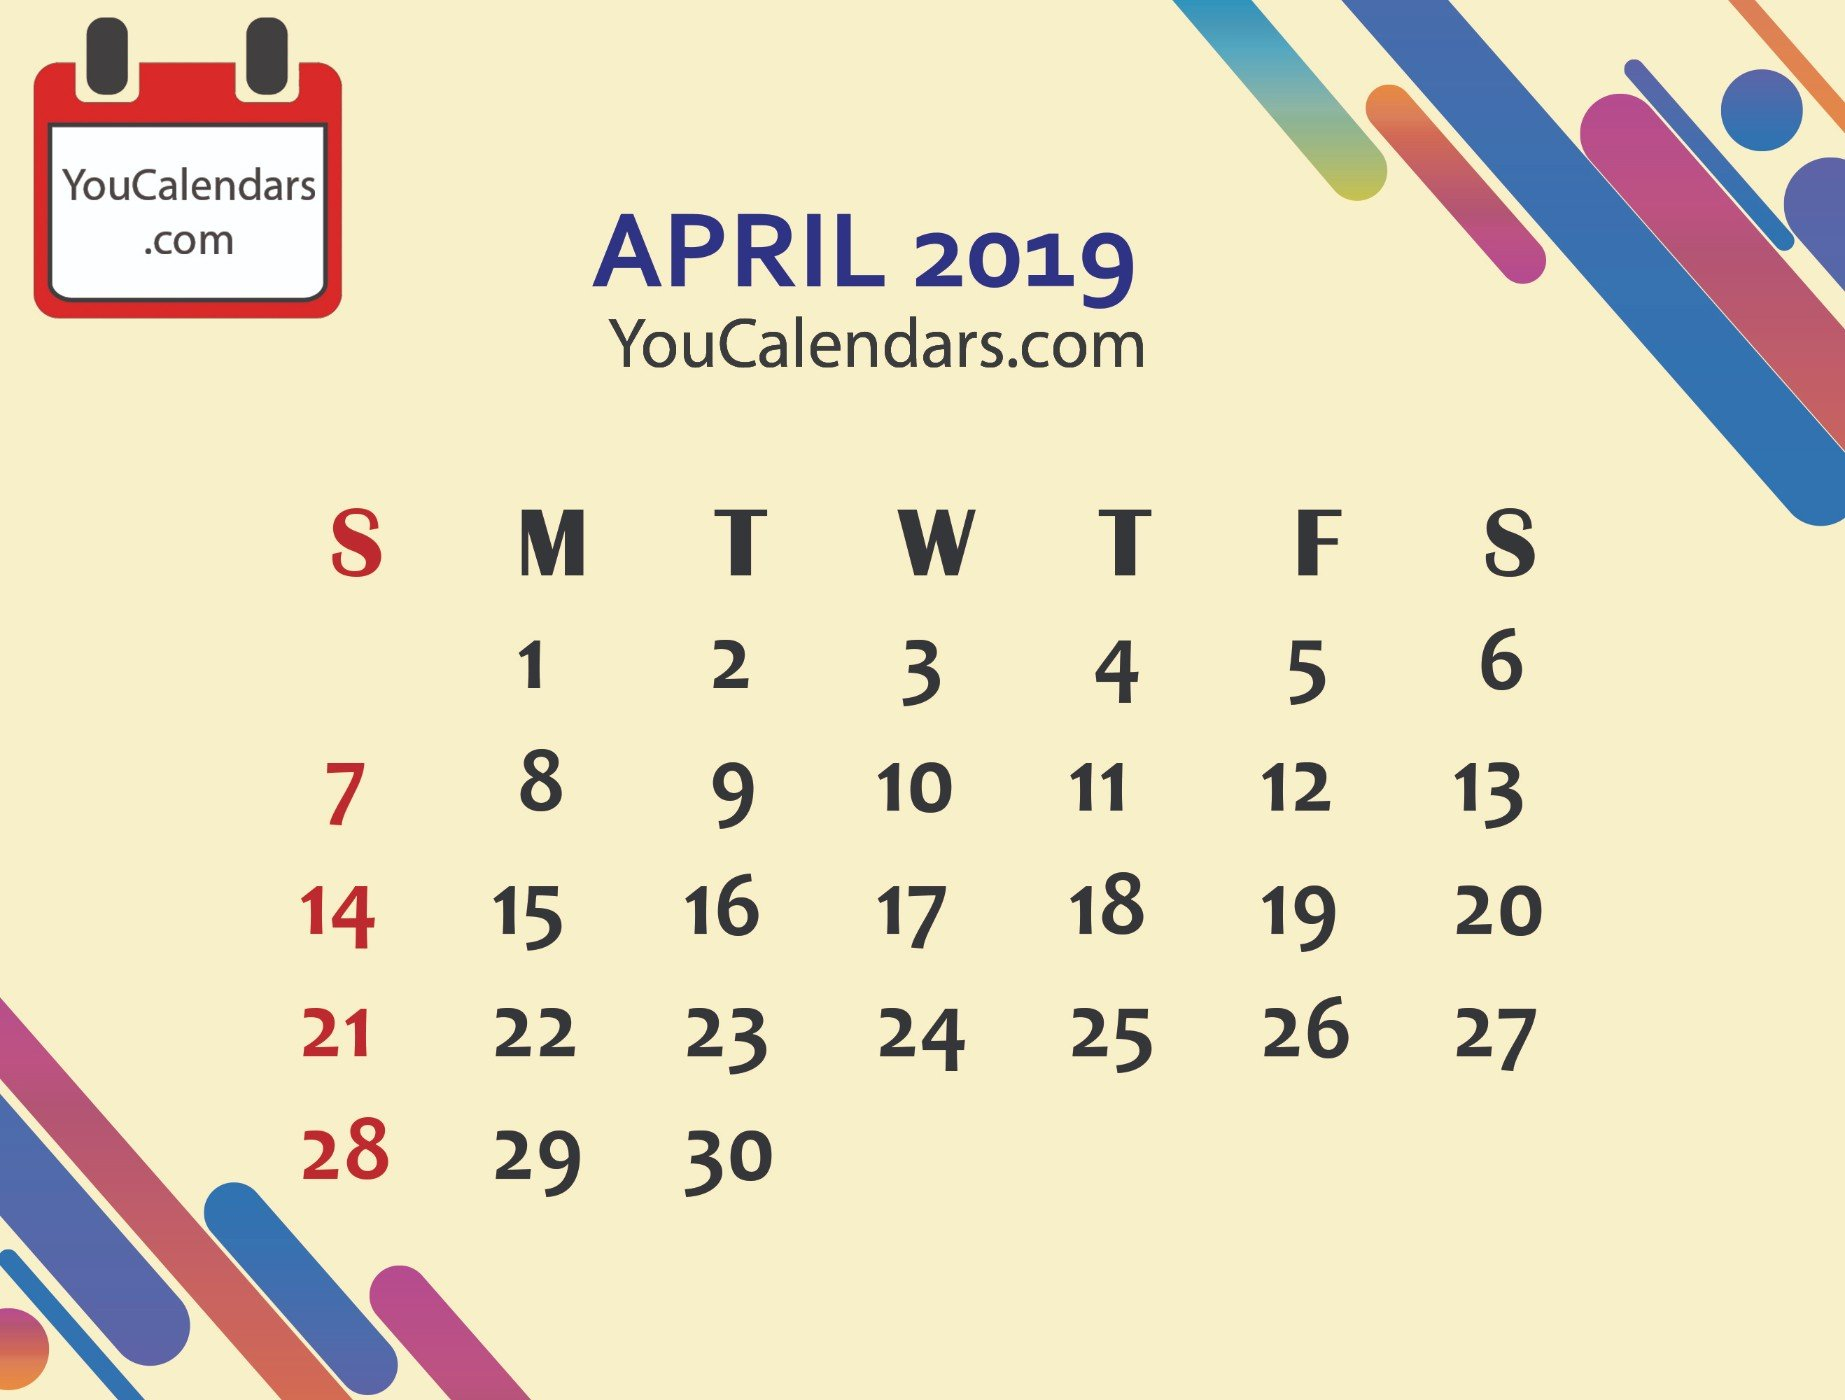 ✅Free April 2019 Calendar Printable Template - You Calendars April 8 2019 Calendar